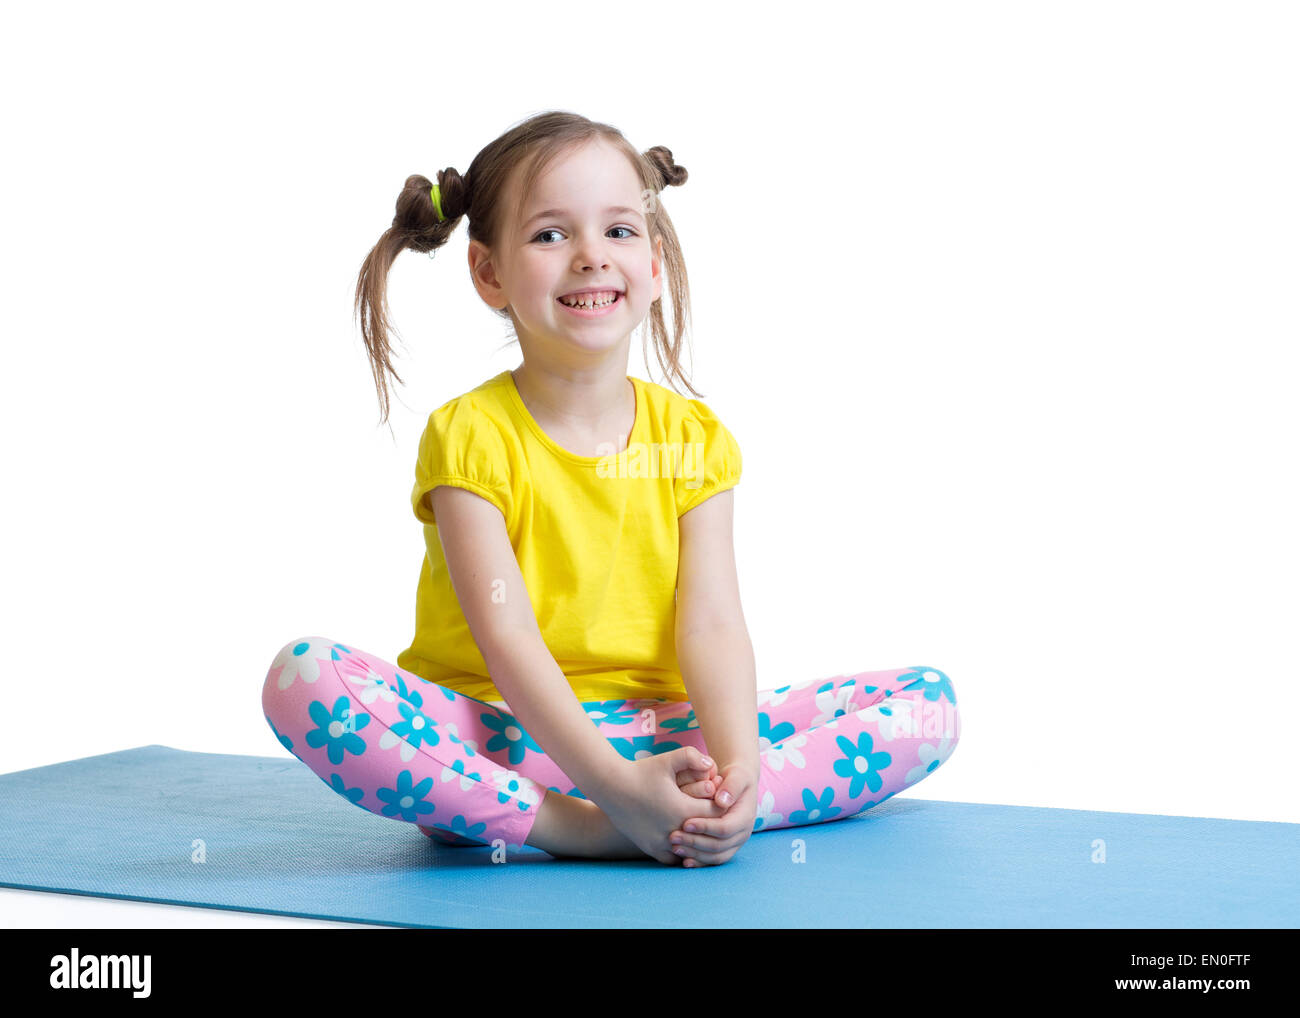 child girl does gymnastics sitting in butterfly pose isolated on white - Stock Image